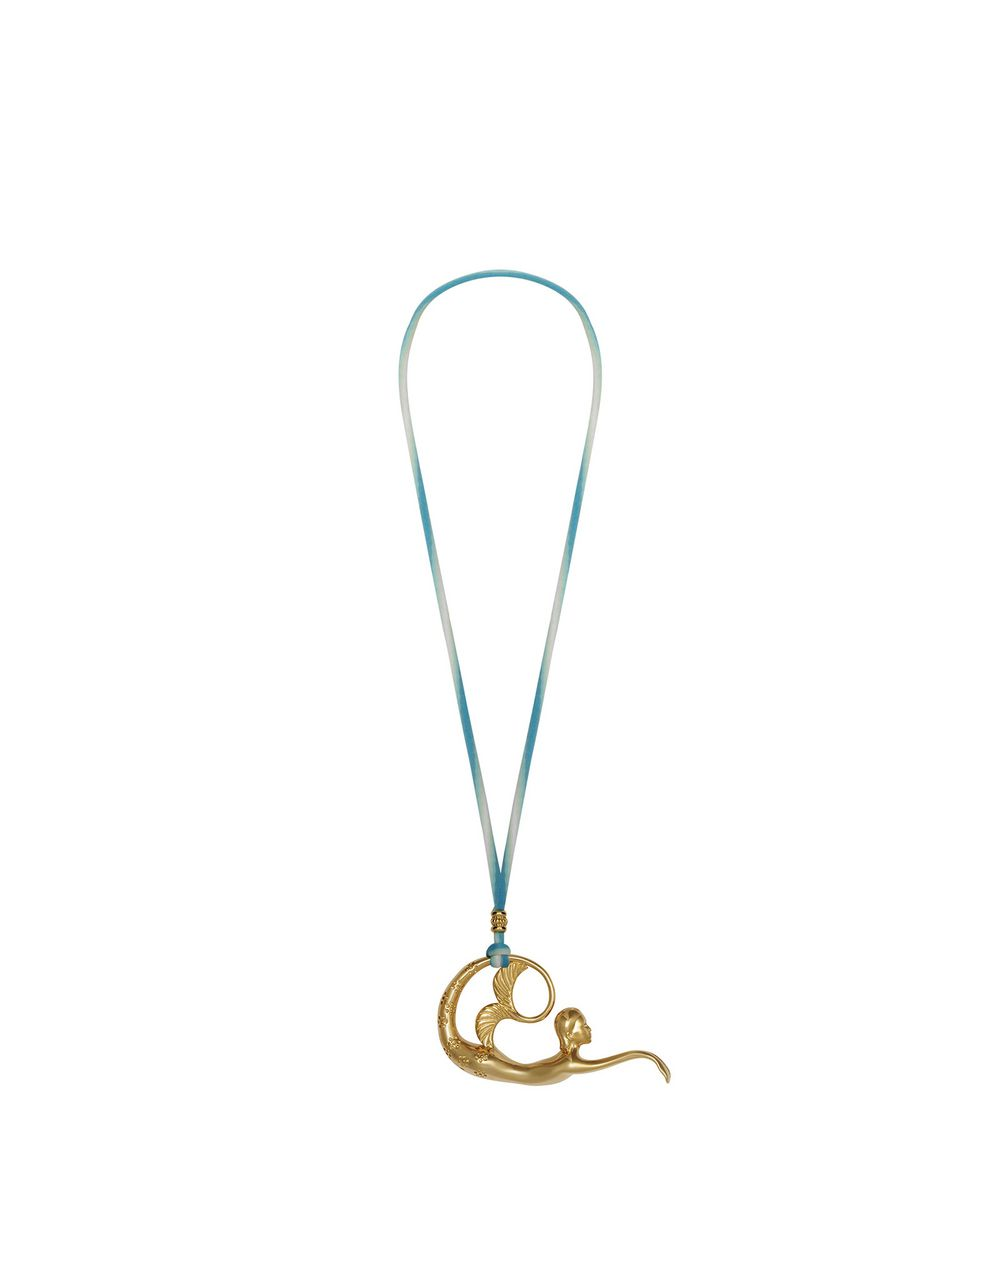 MERMAID NECKLACE - Lanvin